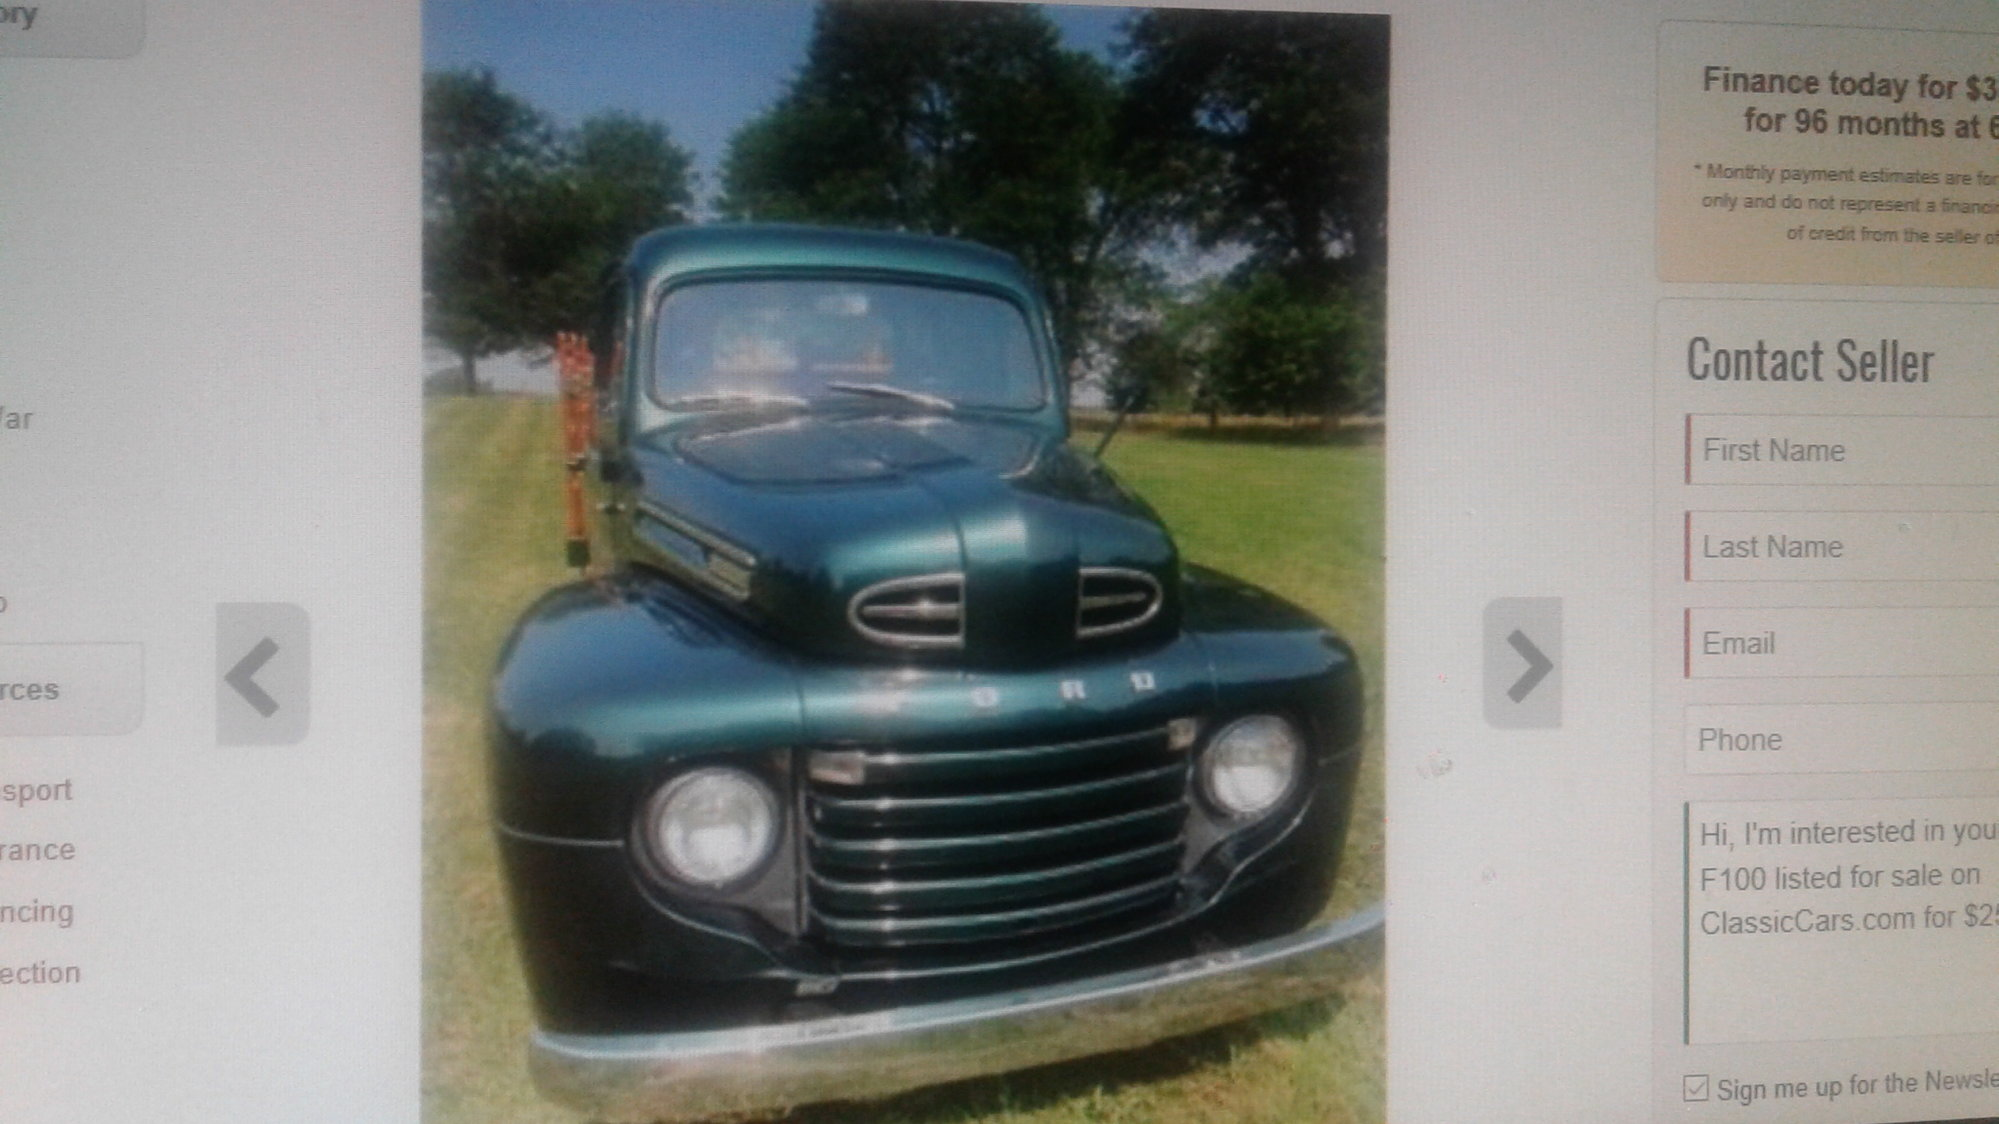 wireing diagram ford 1950 ford f100 - Ford Truck ...